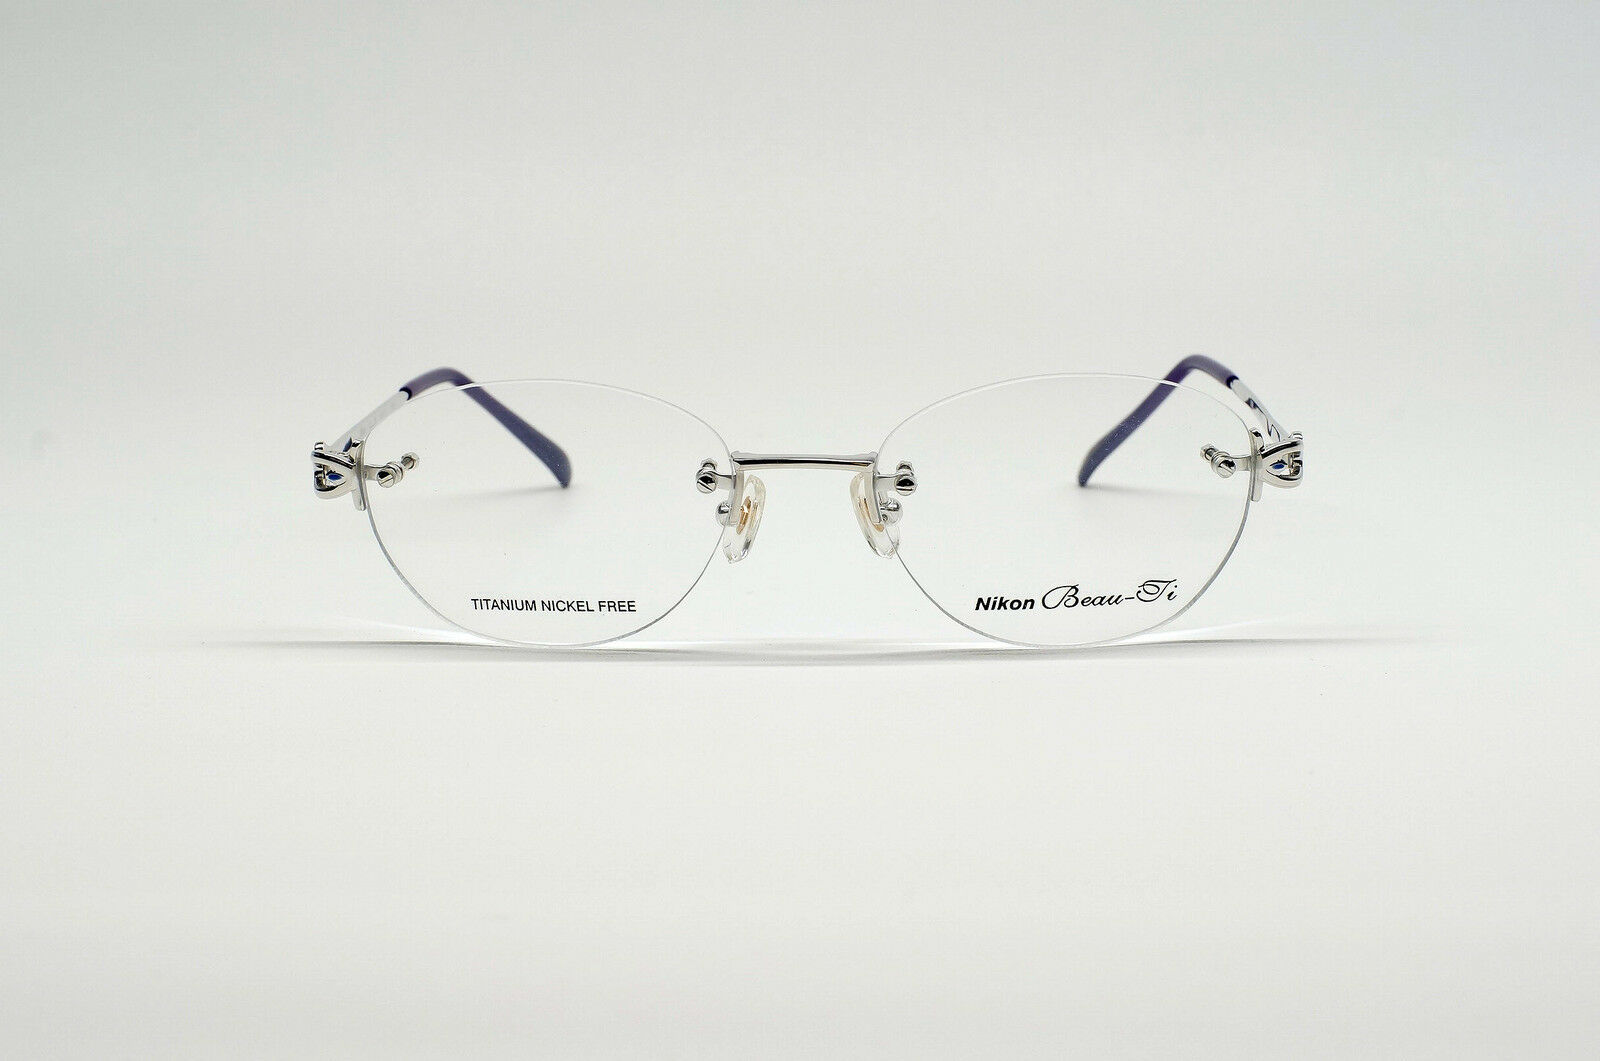 NEW NIKON WOMEN\'S Rimless/Titanium-Nickel-Free FRAME - Silver ...